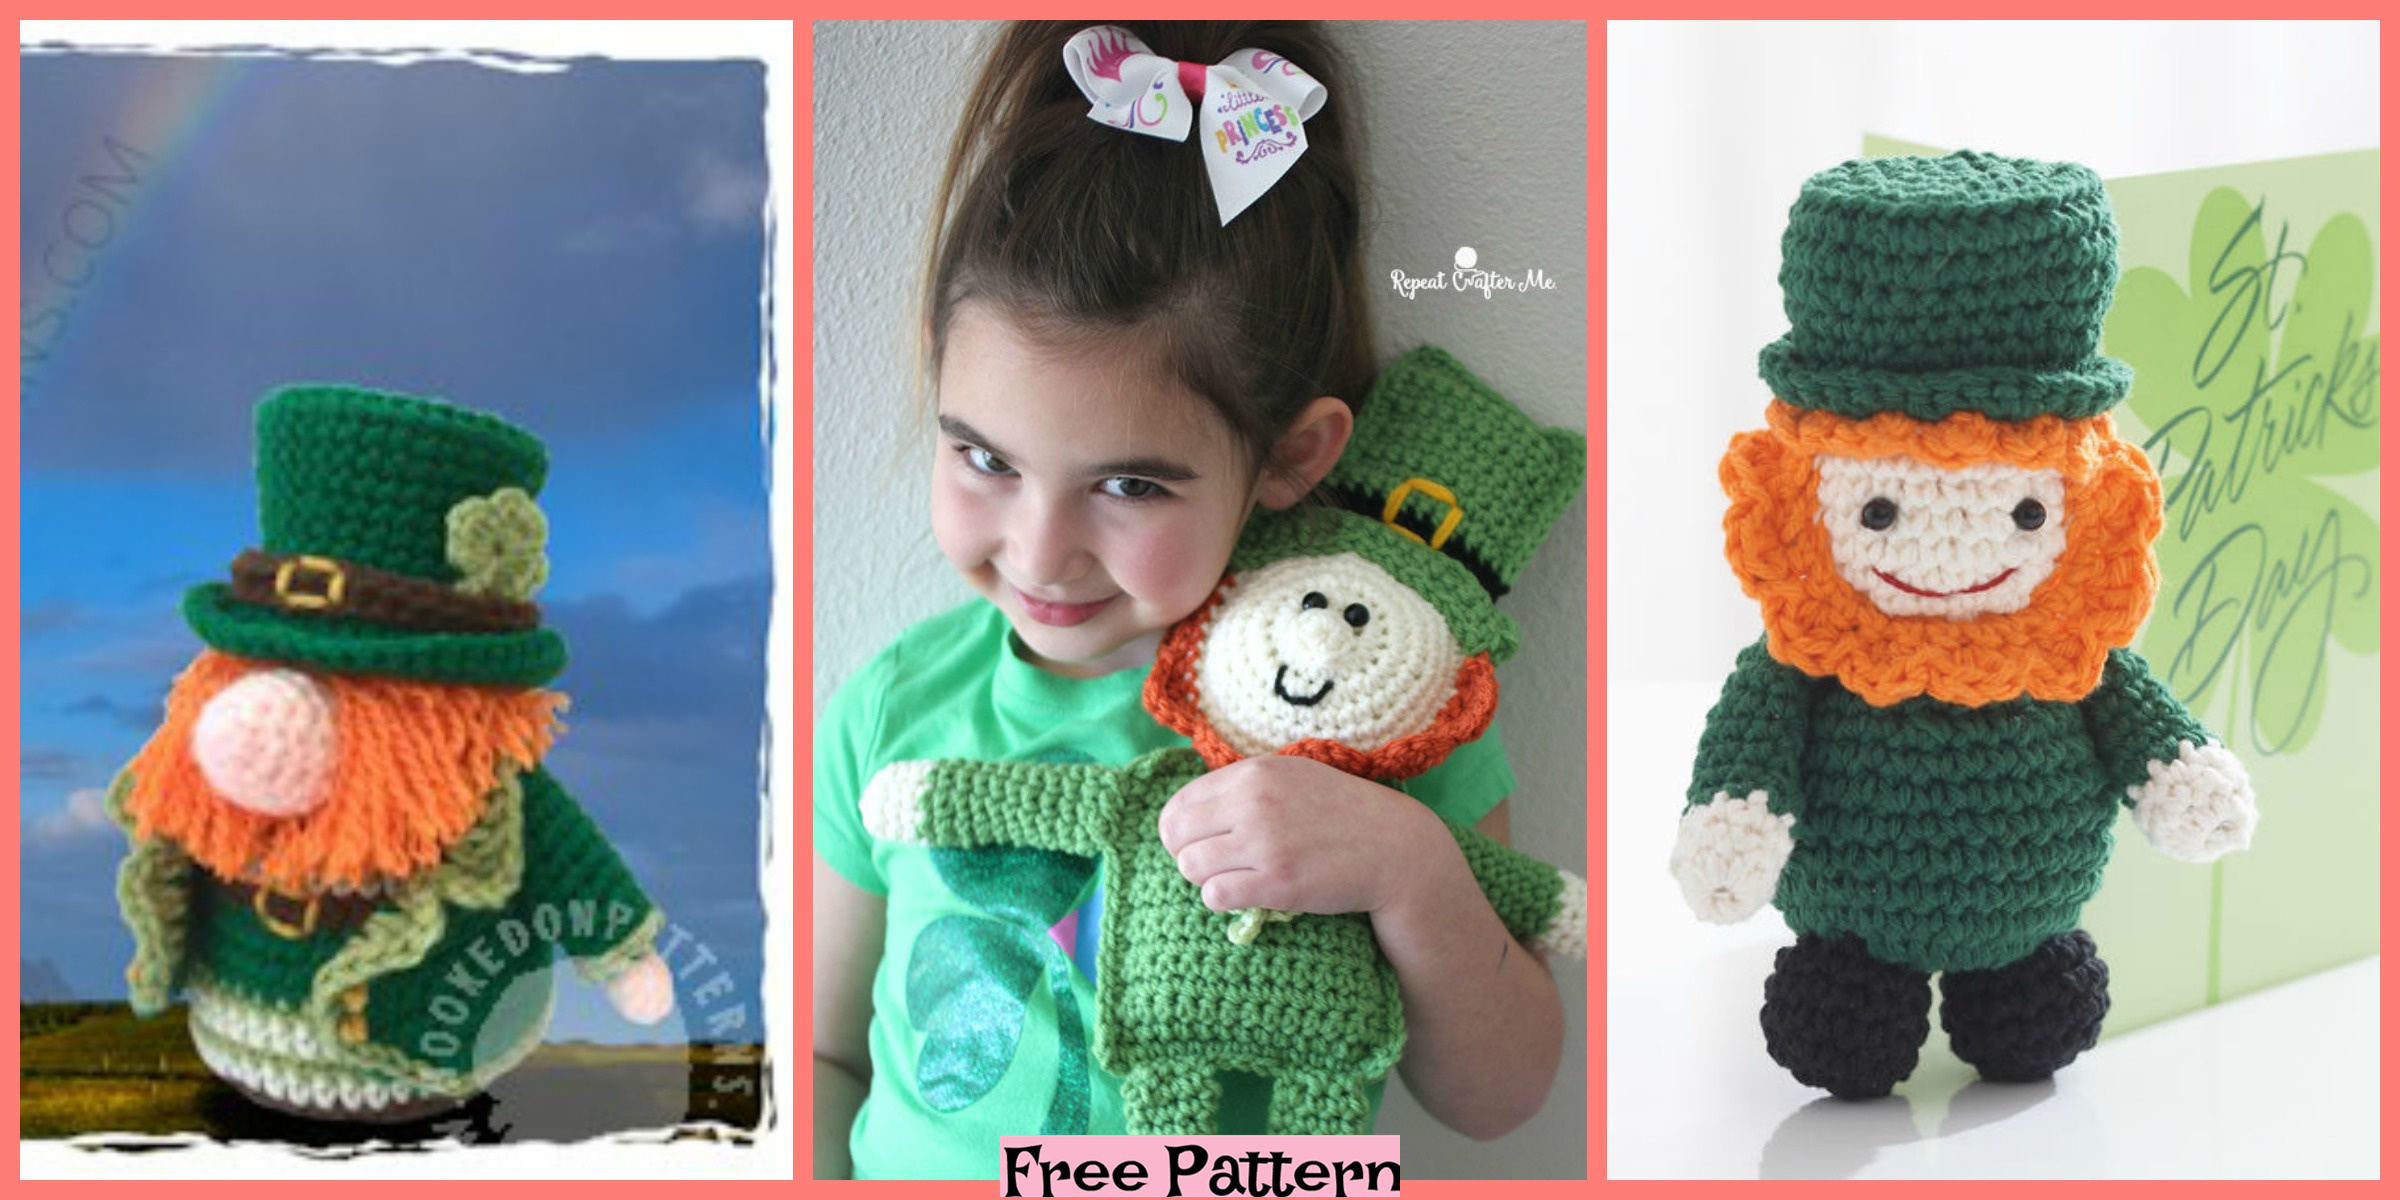 Crochet Leprechaun Cuddle Buddy – Free Pattern